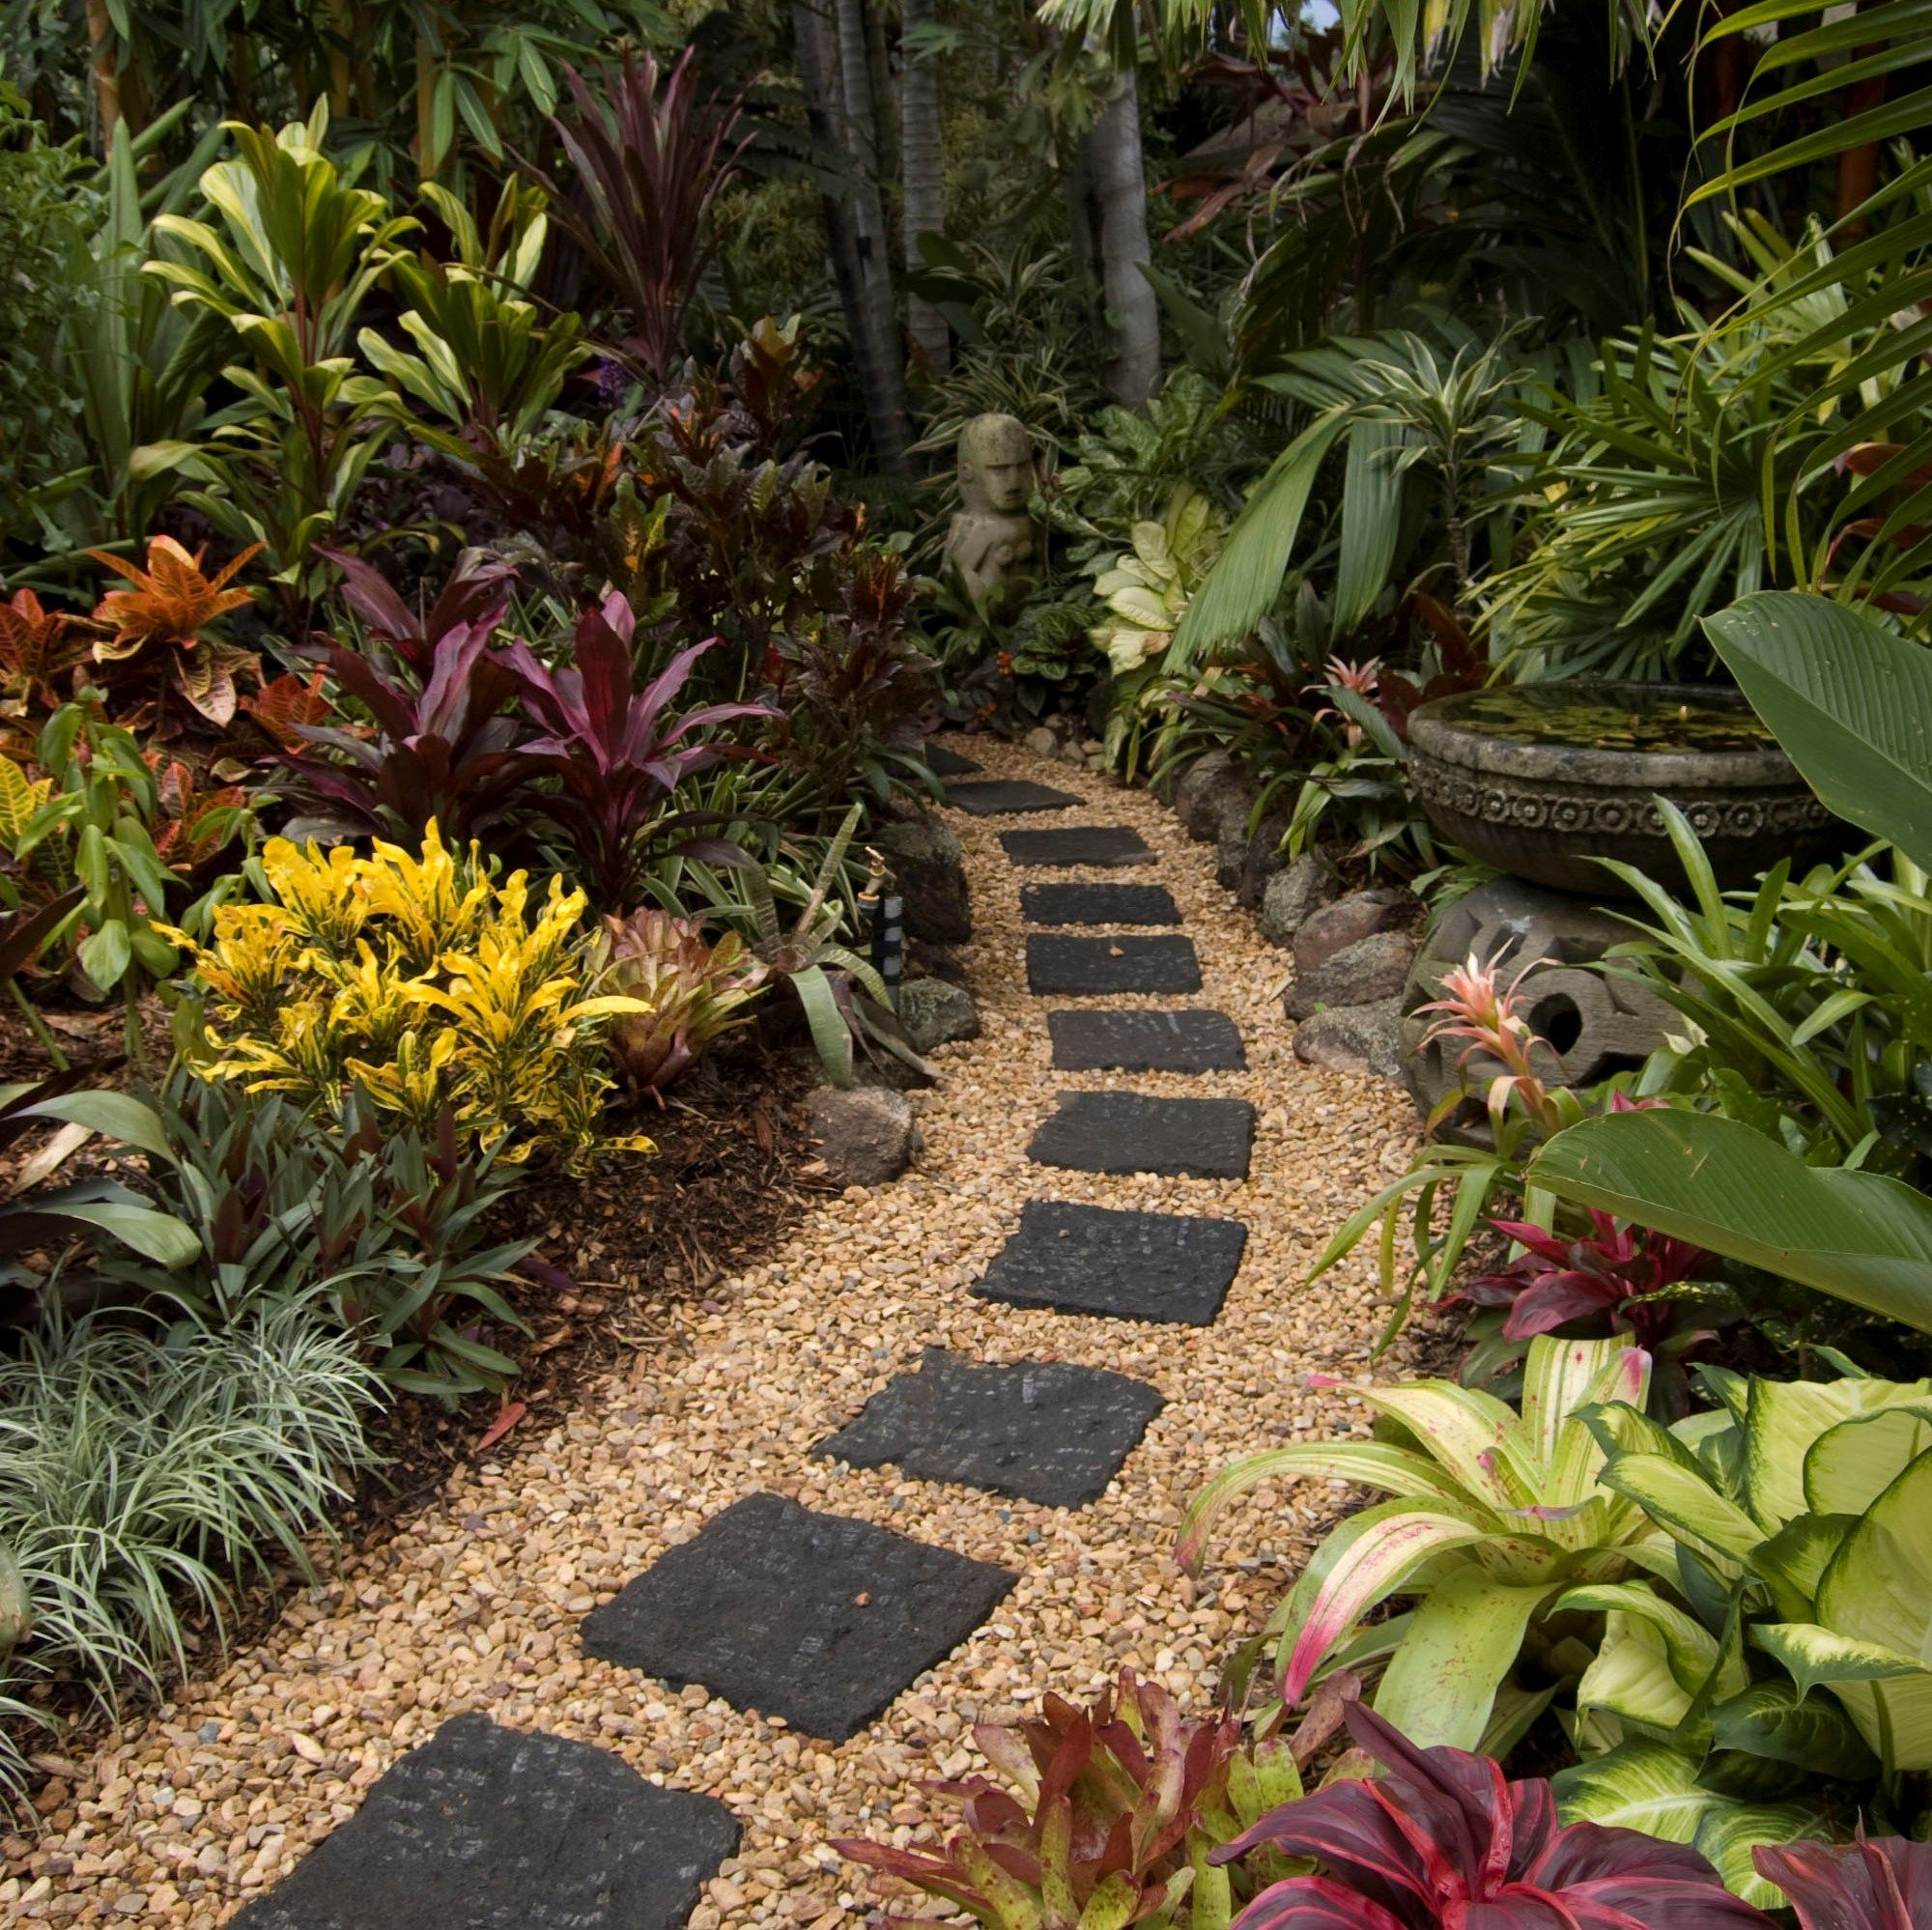 Stone Garden Path Ideas front yard landscape construction project with garden path stone walkway edging and plants Path Gardening Ideas Paver Path Garden Ideas Inspiration Videos Advicegarden